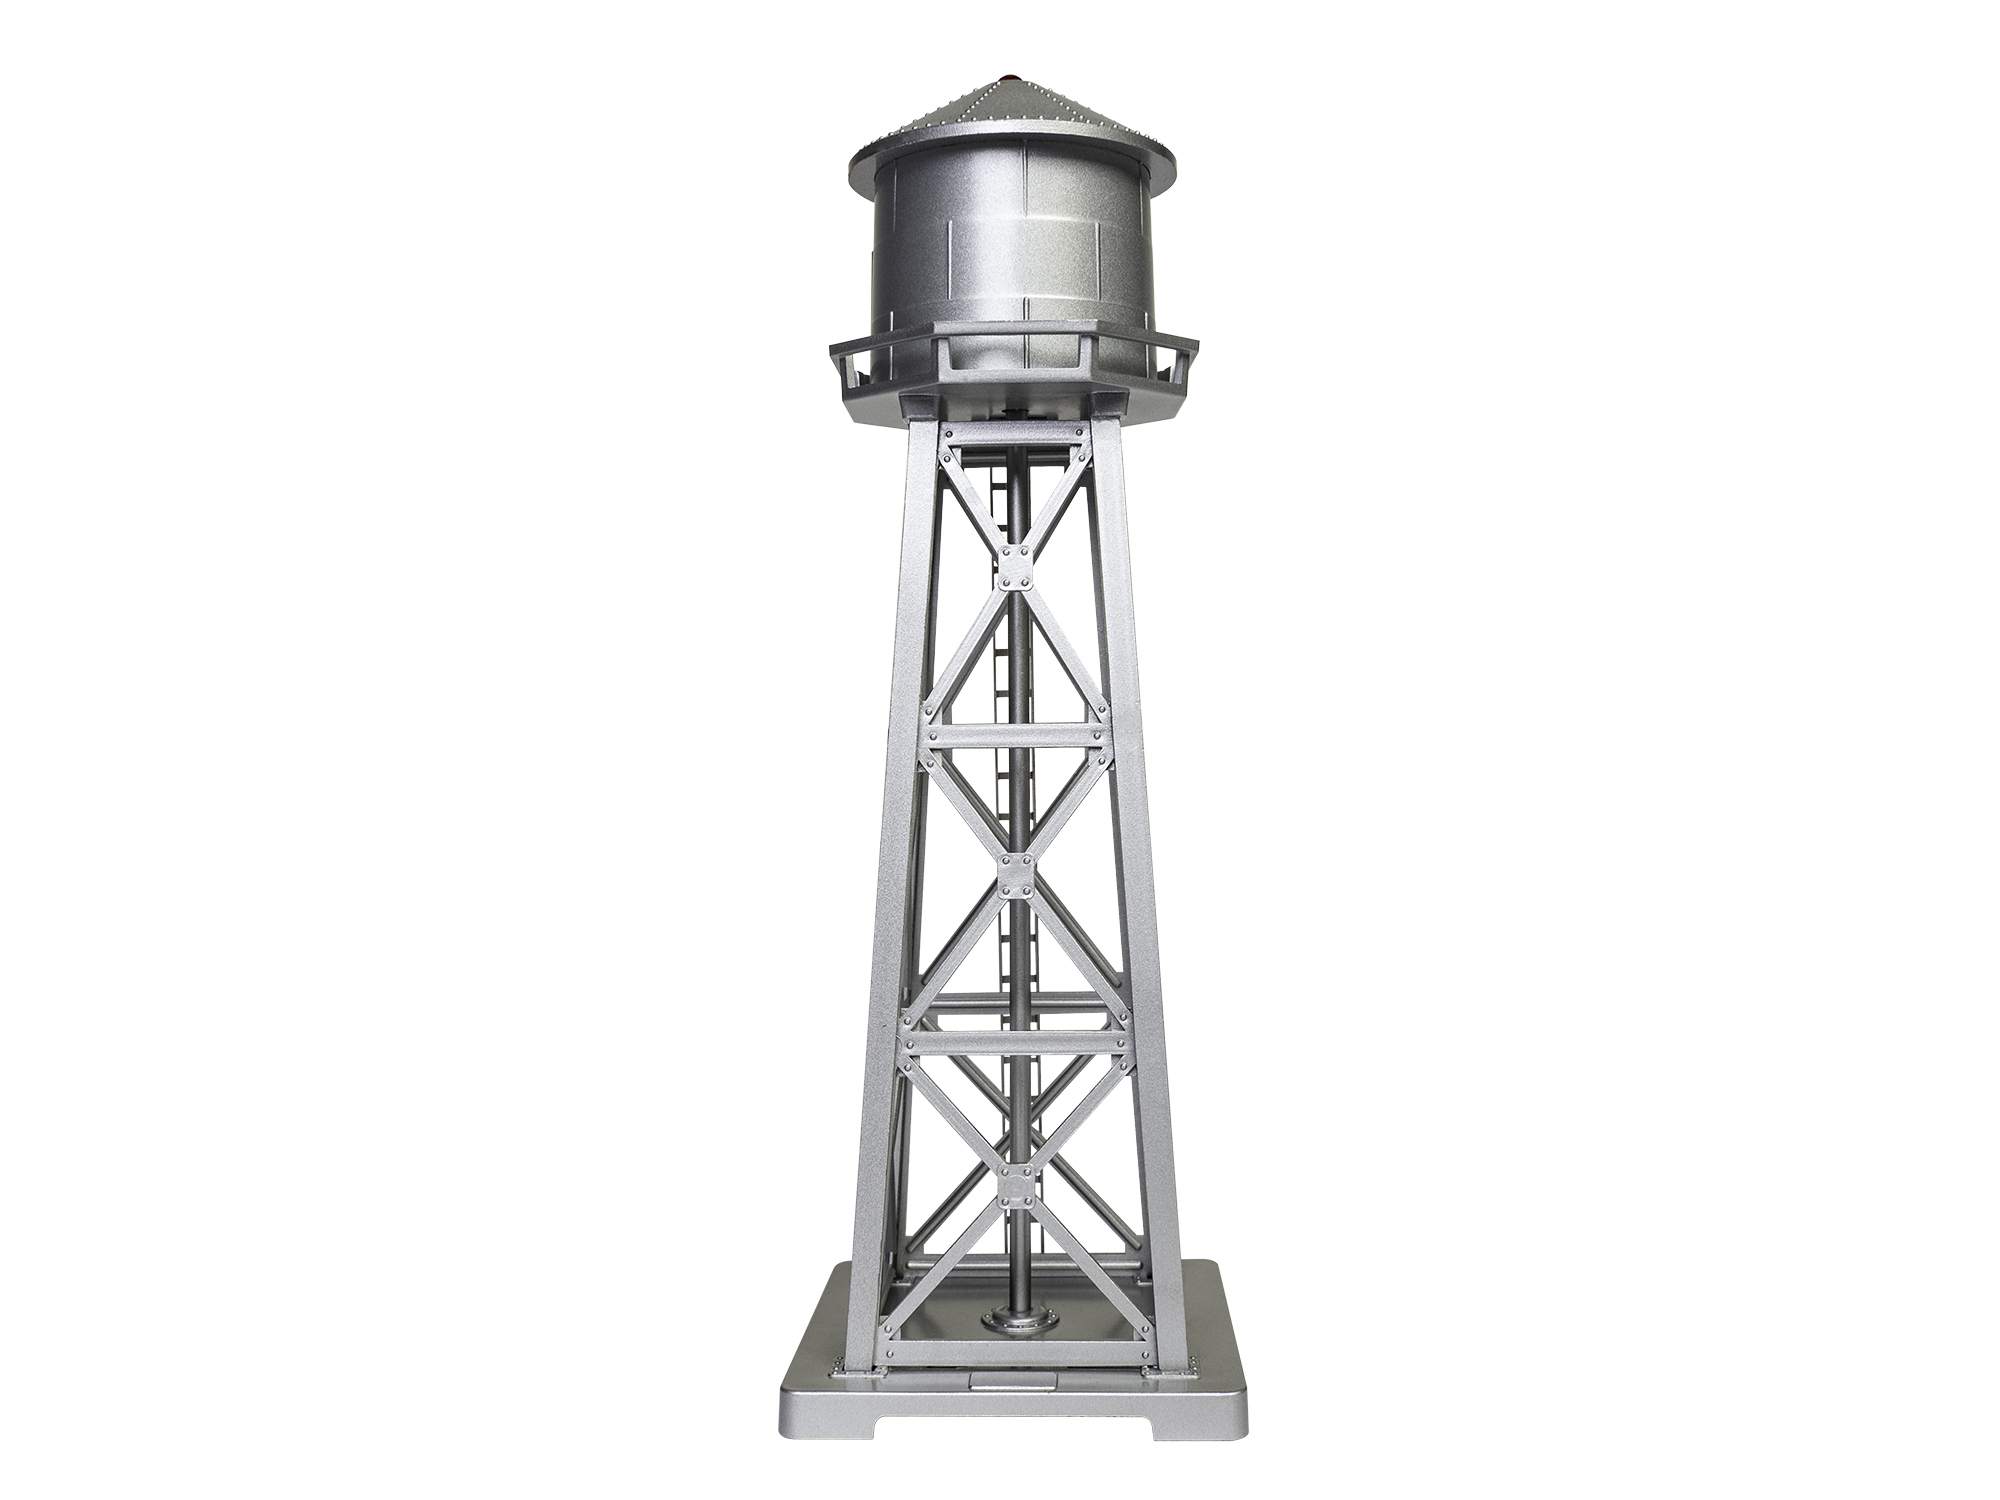 Lionel 1956120 HO Lighted Water Tower Kit Silver